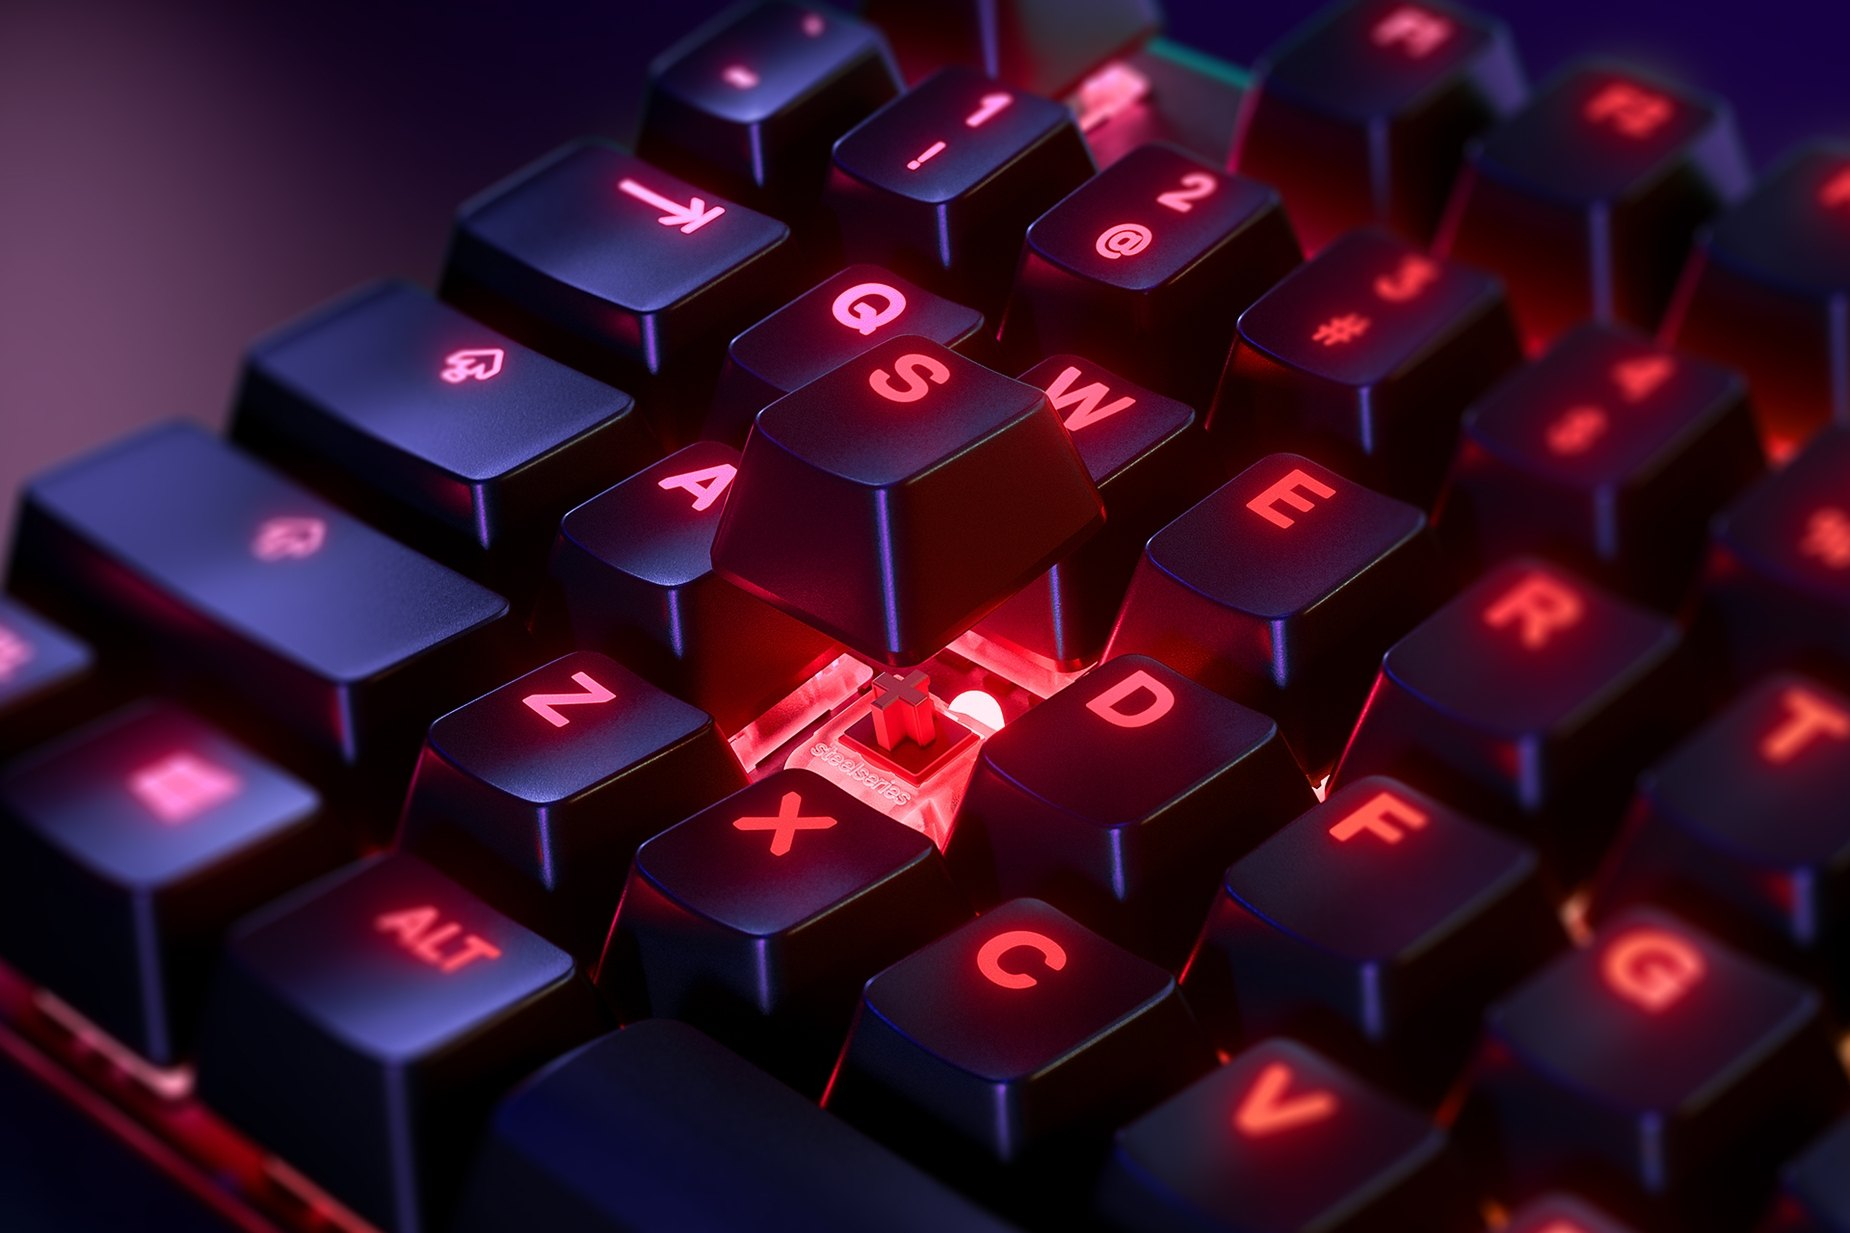 Zoomed in view of a single key on the German - Apex 7 (Red Switch) gaming keyboard, the key is raised up to show the SteelSeries QX2 Mechanical RGB Switch underneath